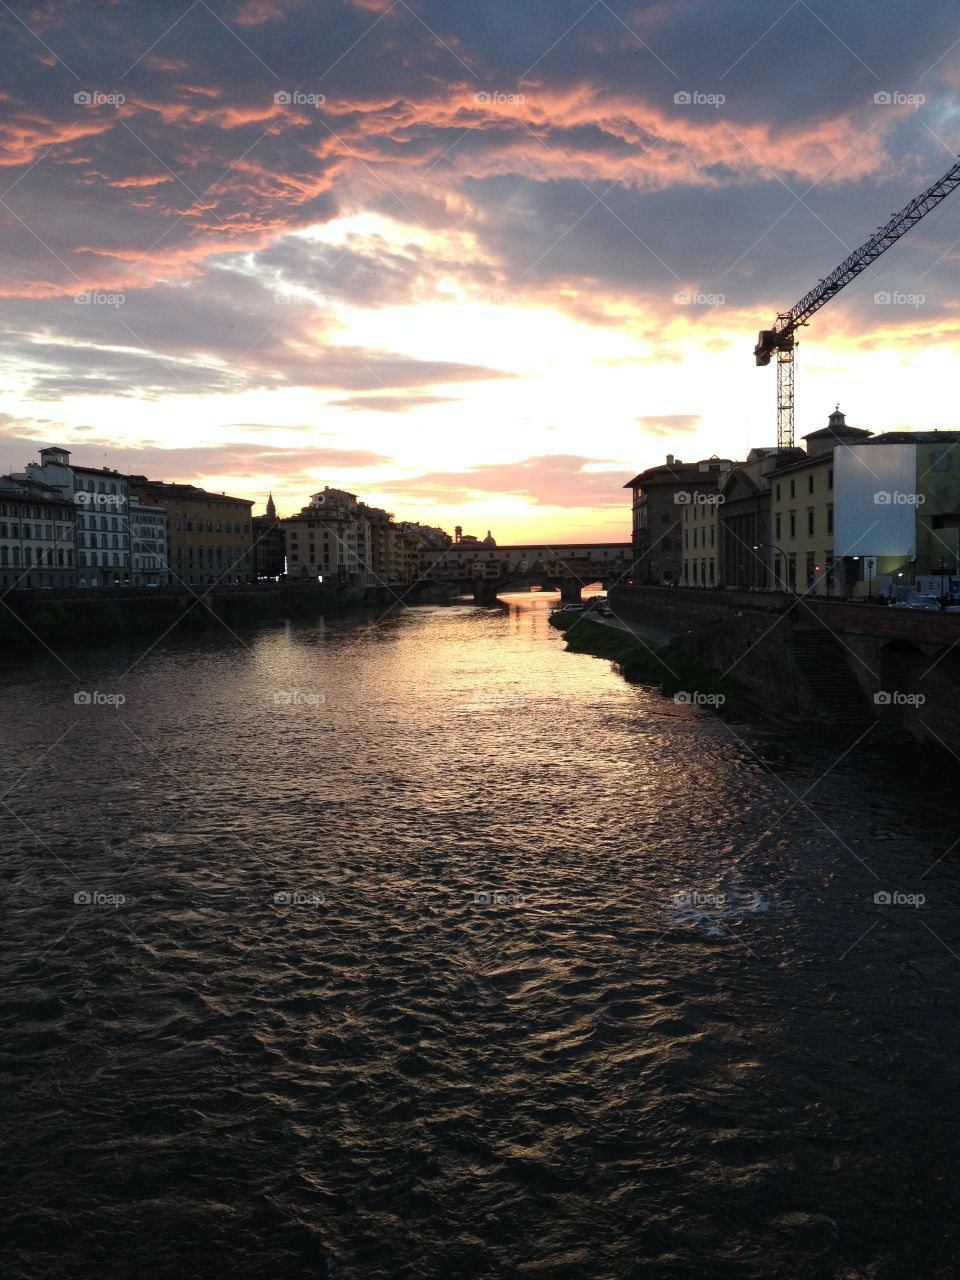 Arno River at sunset in Florence, Italy